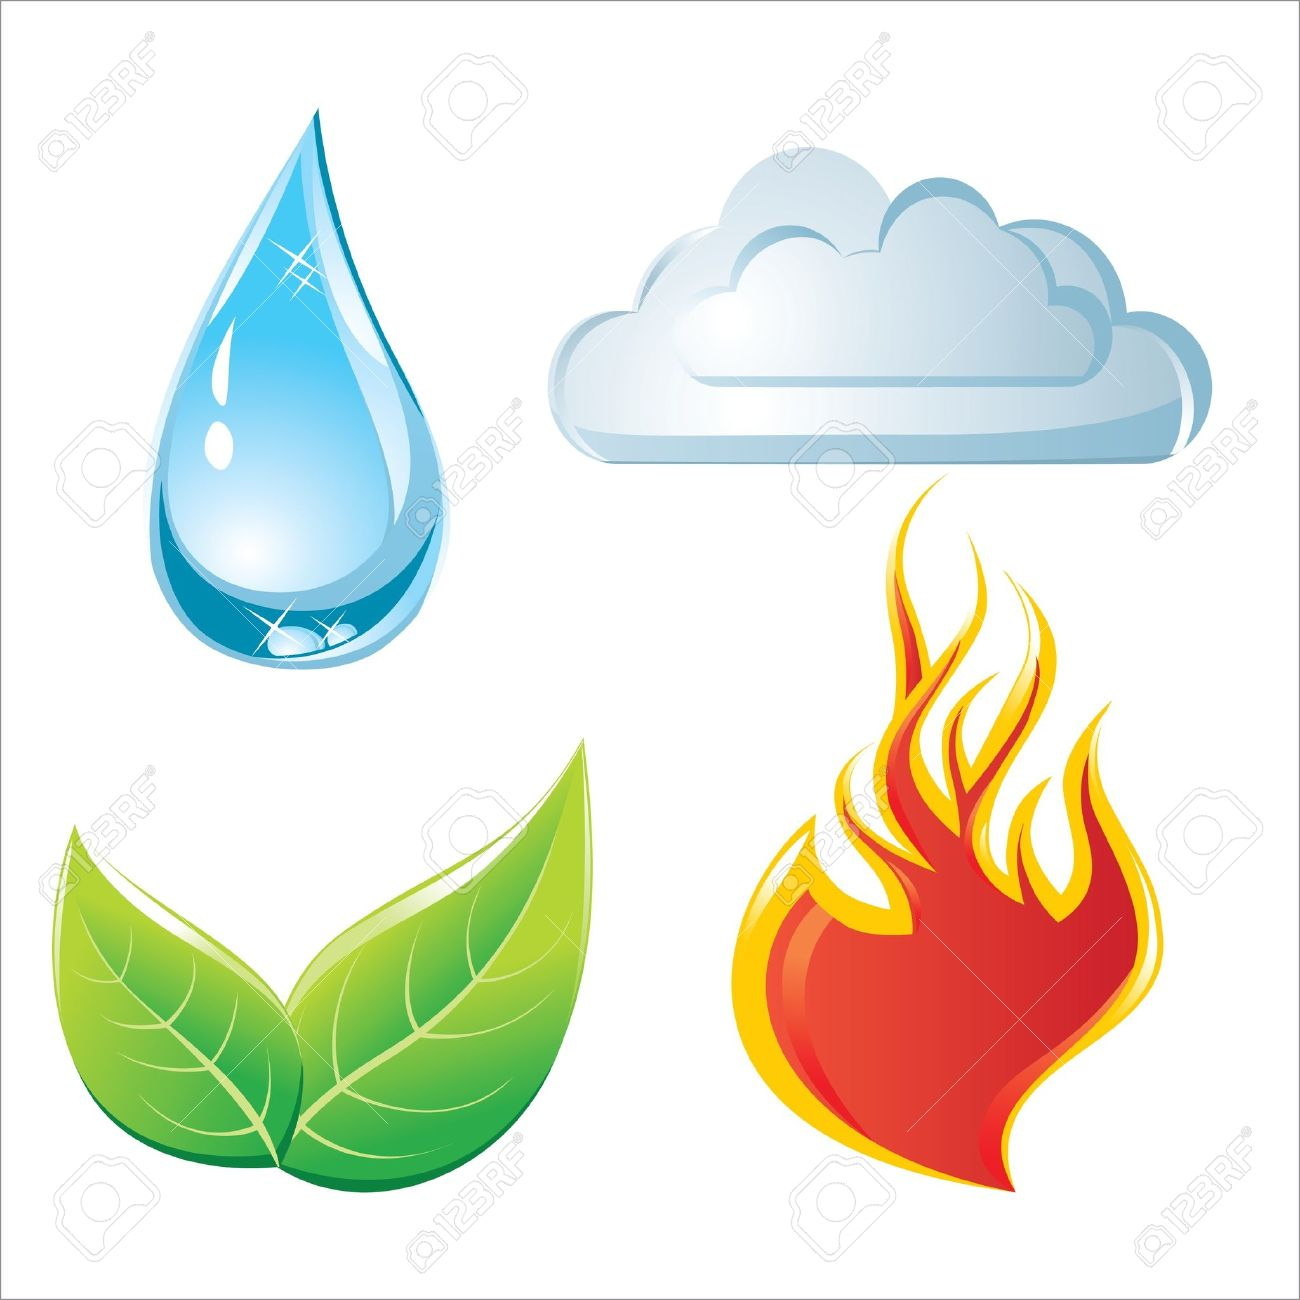 nature elements icons Stock Vector - 14270062